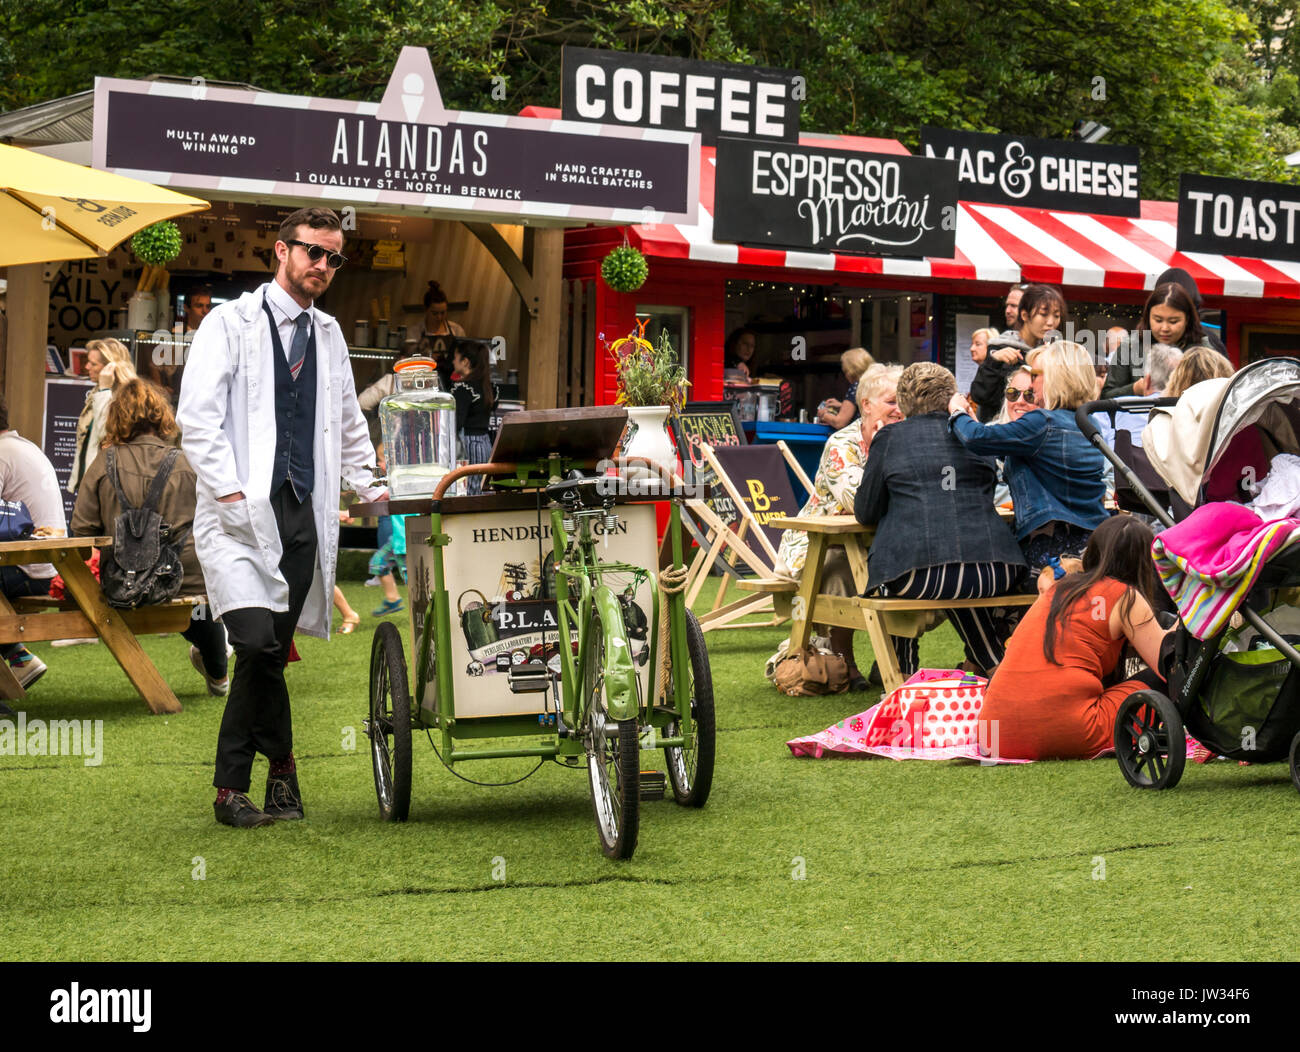 hendricks-gin-trolley-assembly-gardens-g